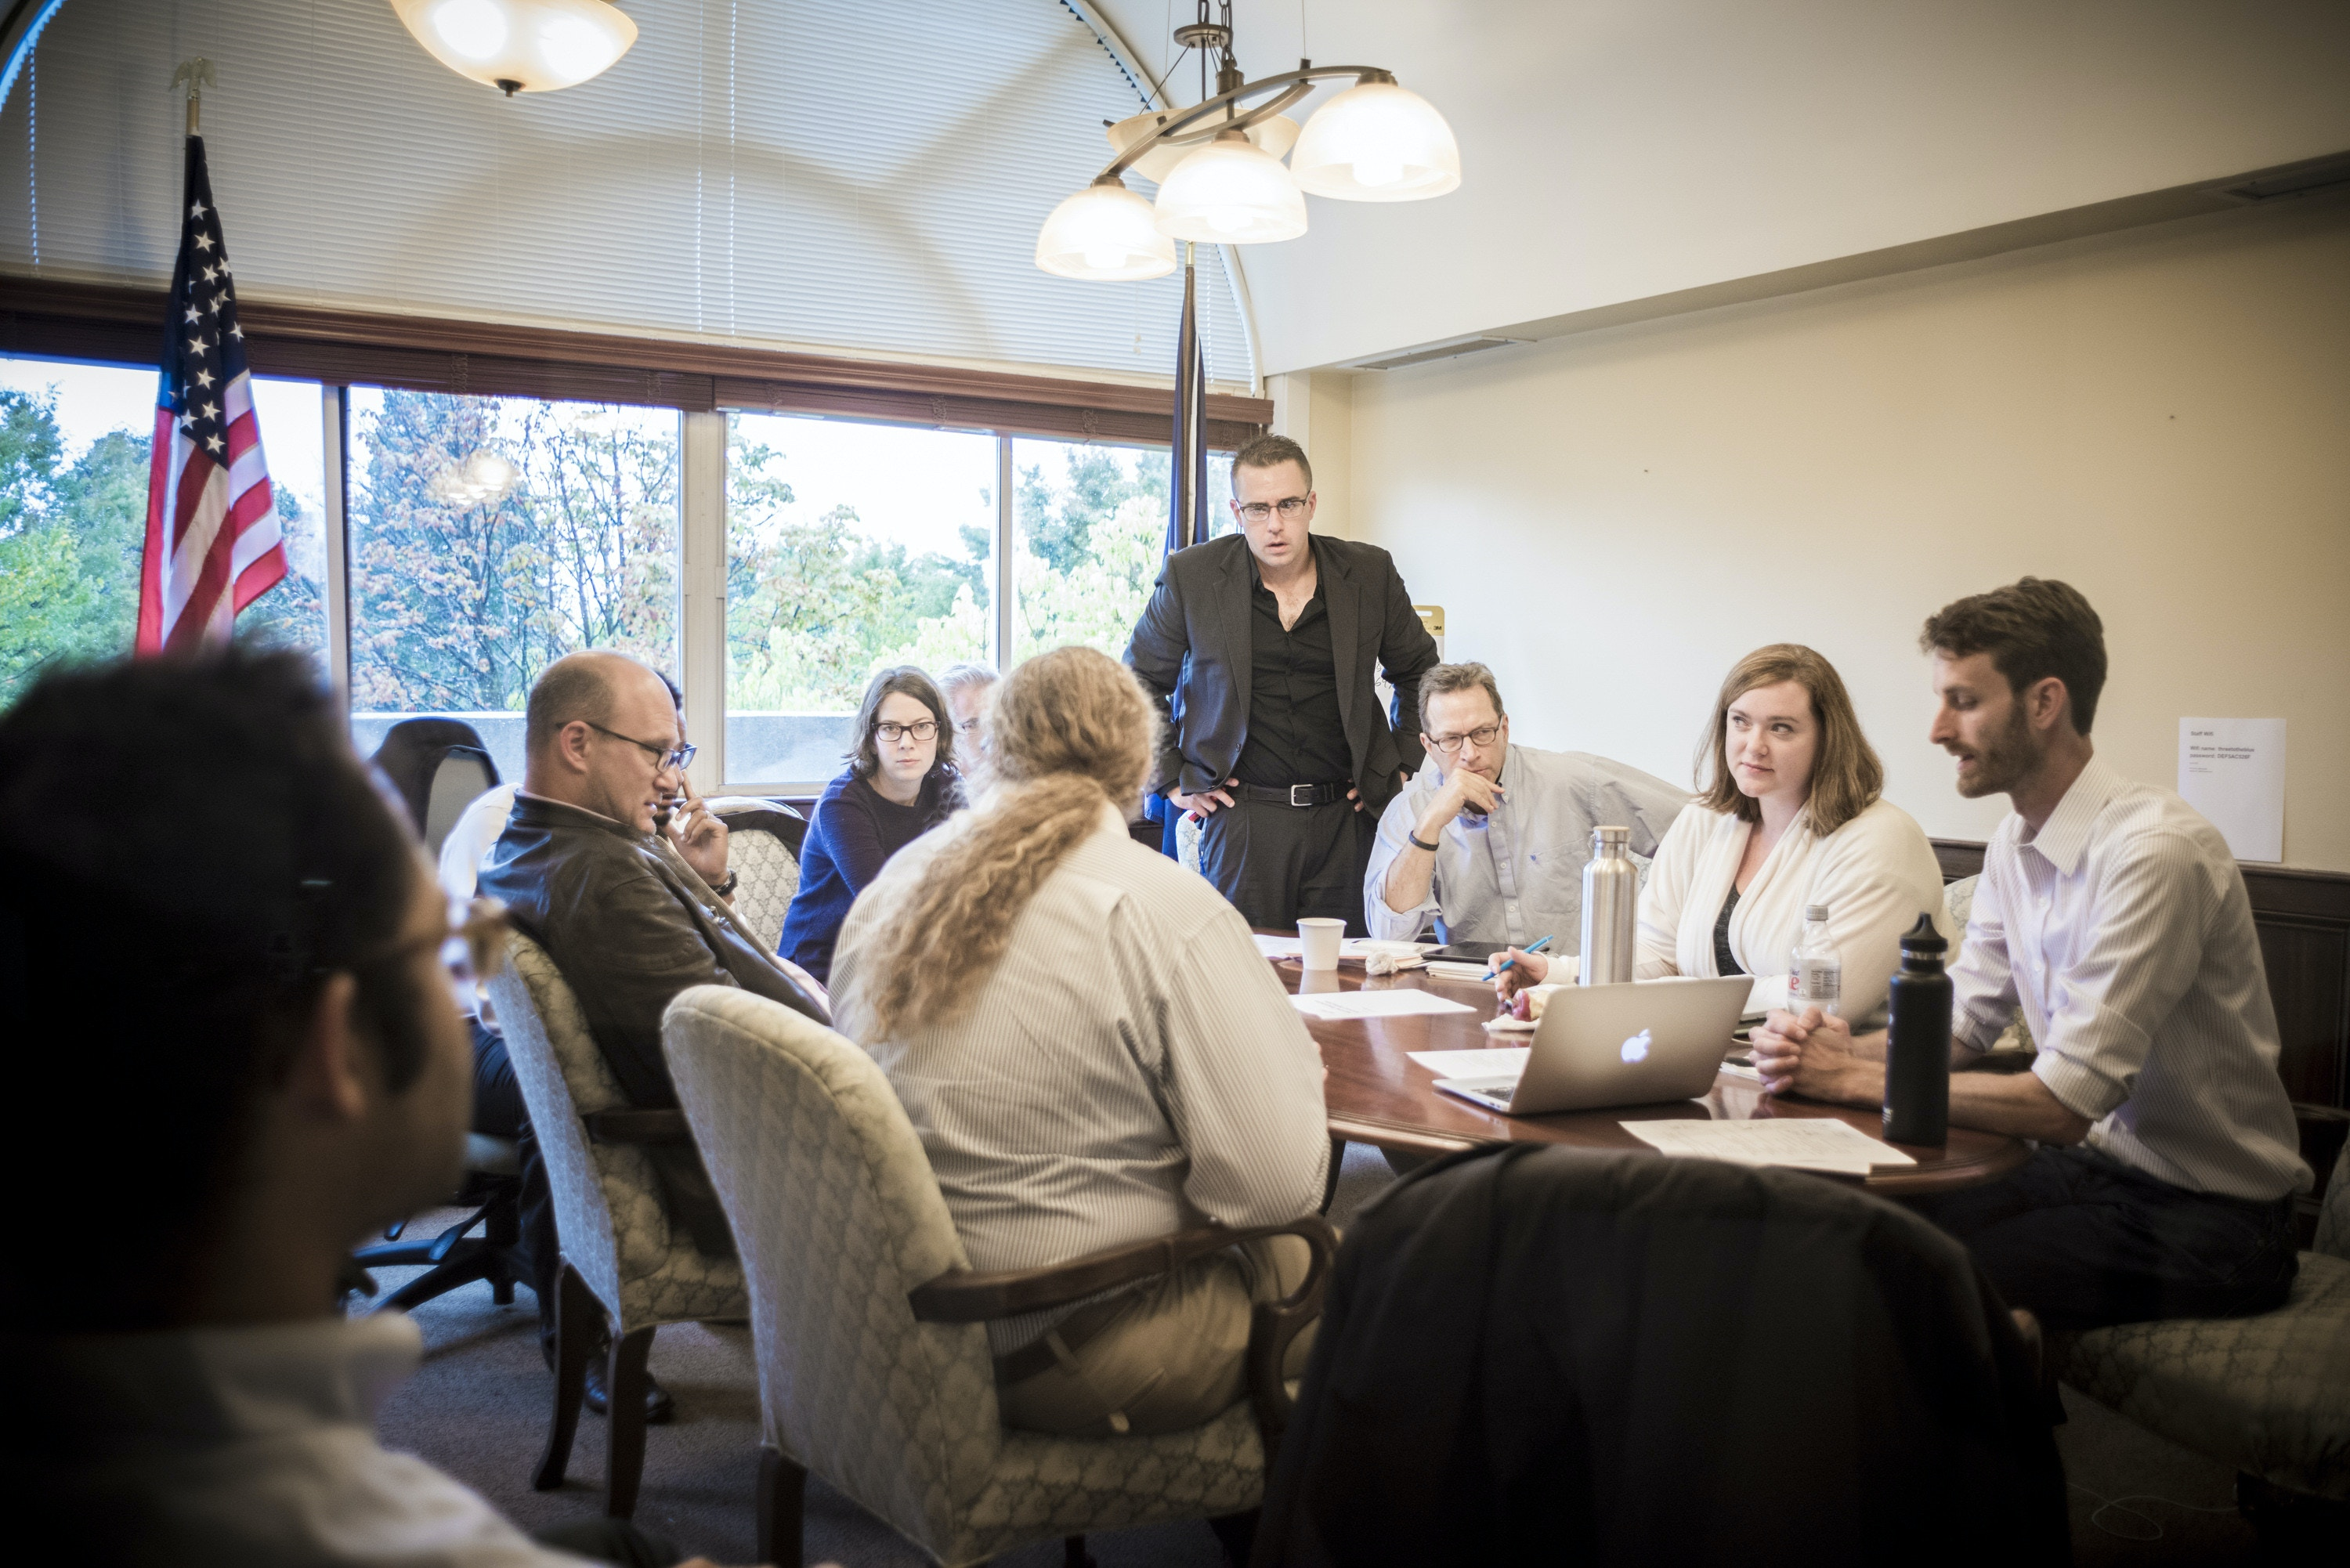 Top advisers to Sen. Bernie Sanders, a Democratic presidential hopeful, meet with members of his campaign staff from Iowa, New Hampshire and South Carolina in Burlington, Vt., Sept. 30, 2015. The Vermont senator and his advisers, having raised about $26 million since July, are forming a battle plan beyond their immediate goals of winning Iowa and New Hampshire. (Ian Thomas Jansen-Lonnquist/The New York Times)